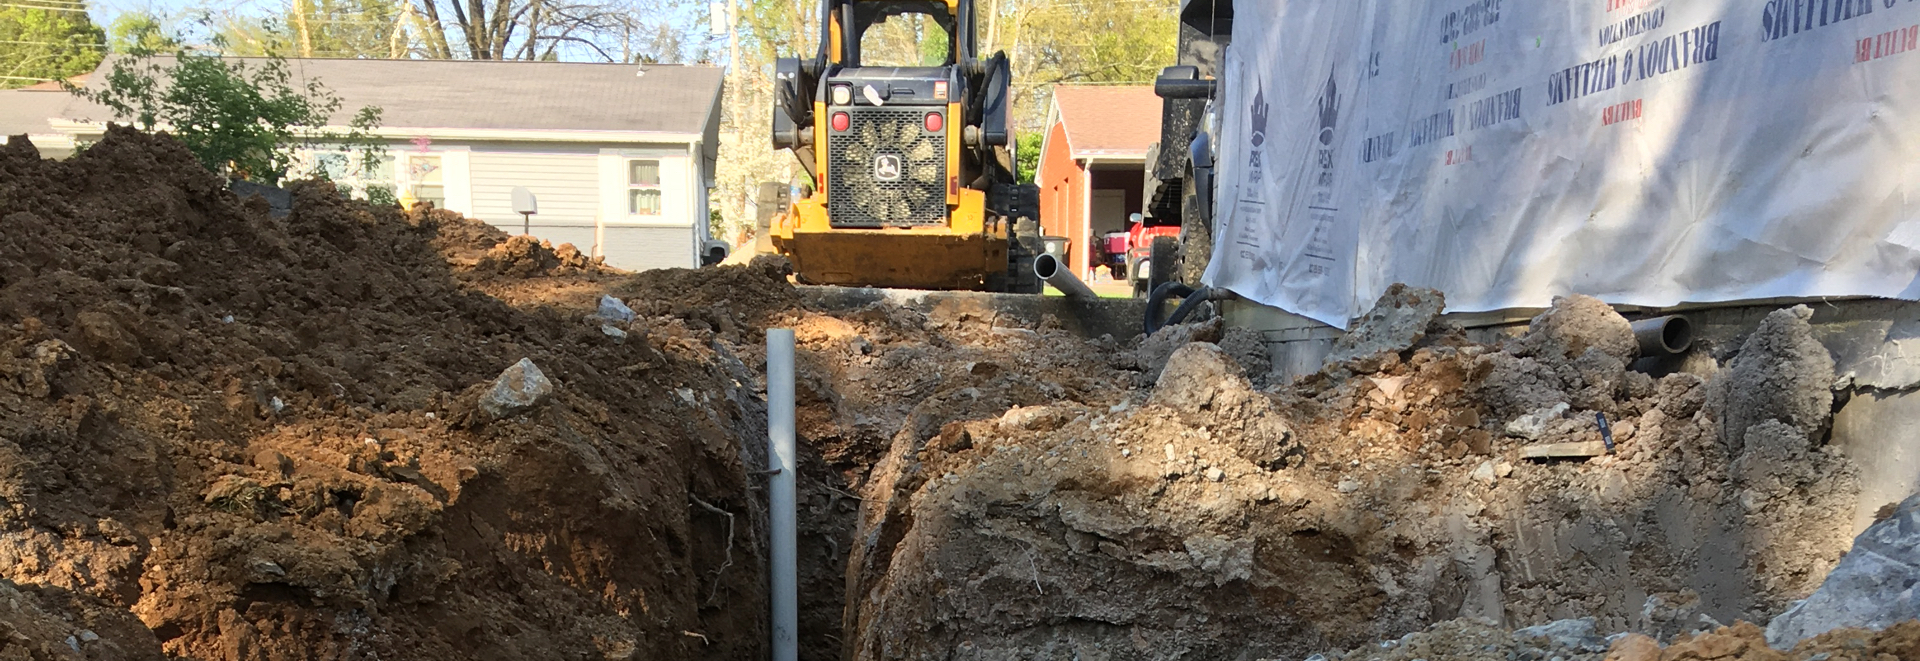 septic work in process